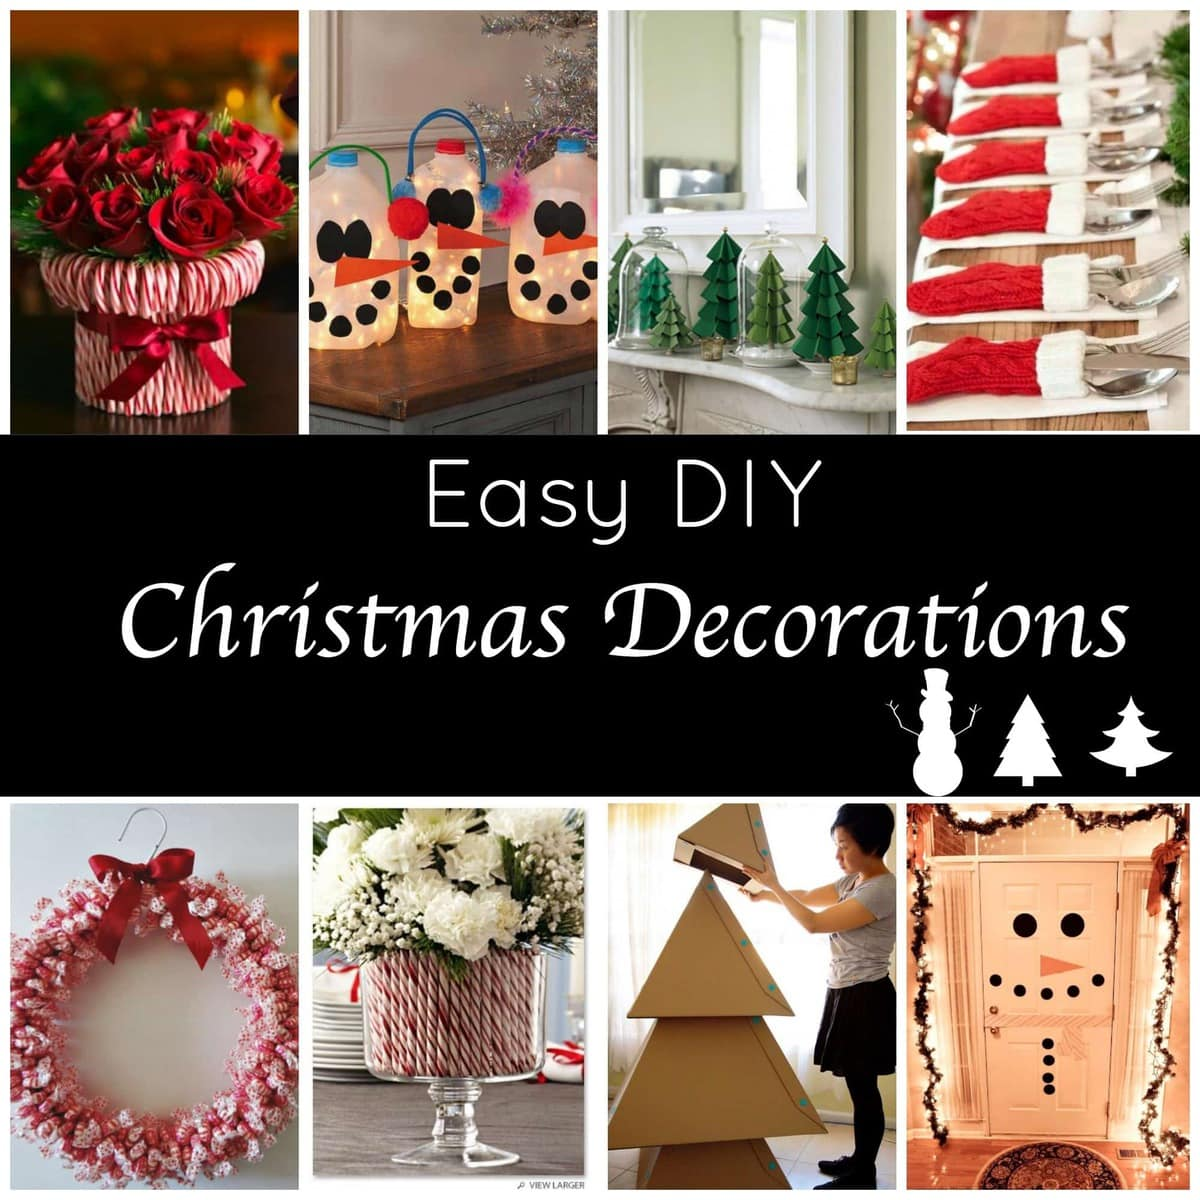 Cute and easy diy holiday decorations for a festive home for How to make easy christmas decorations at home